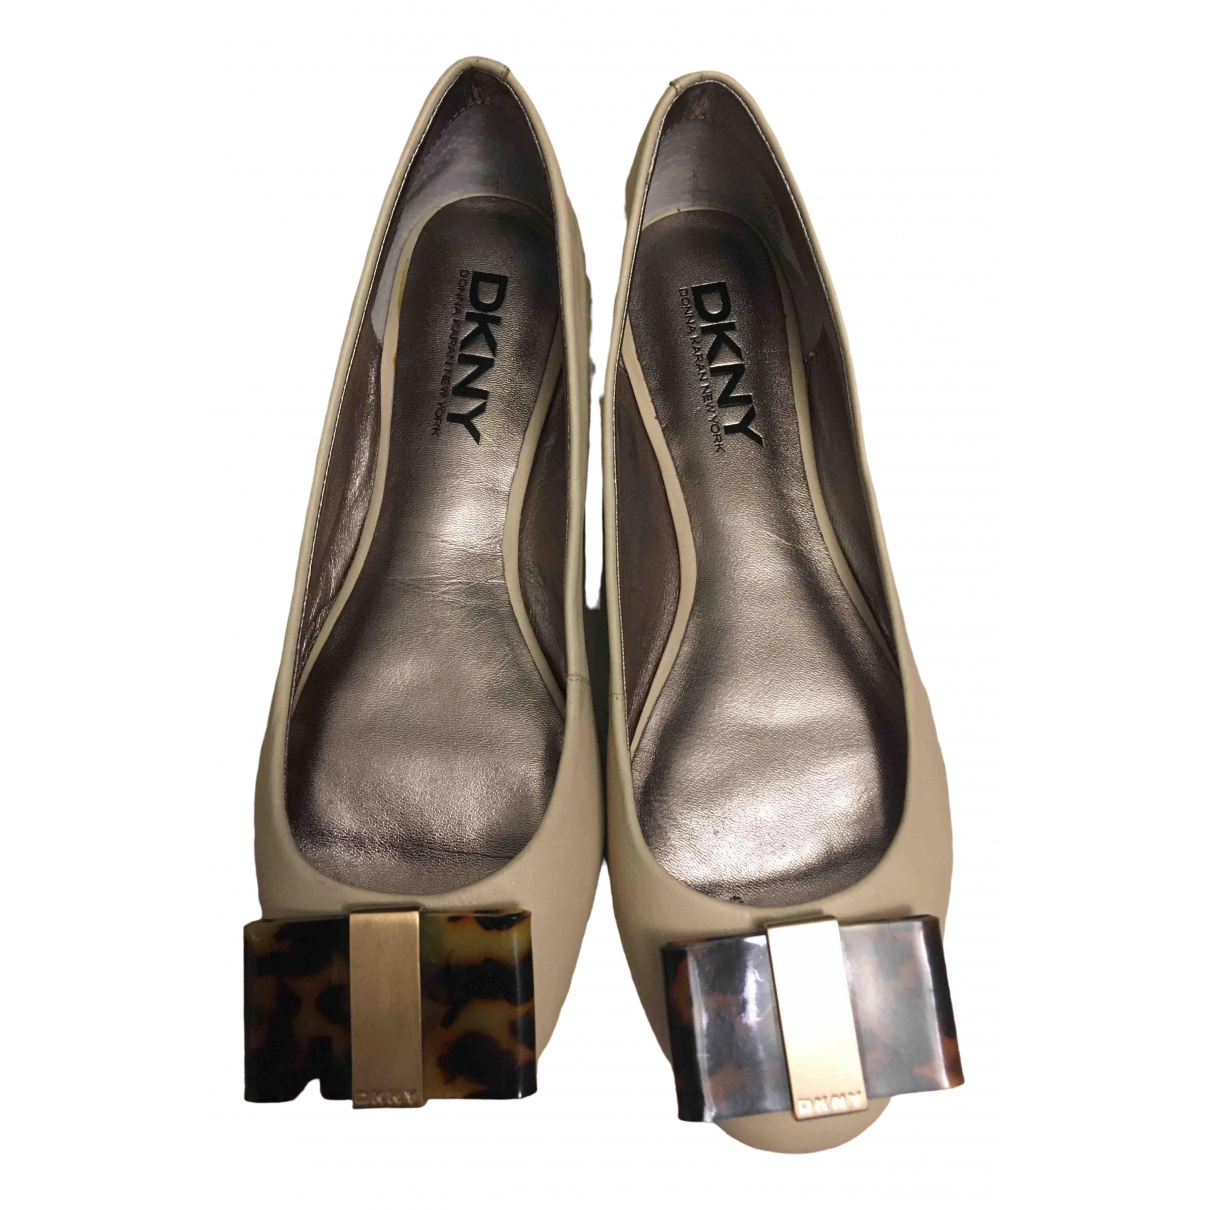 Dkny N Beige Leather Ballet flats for Women 37 EU